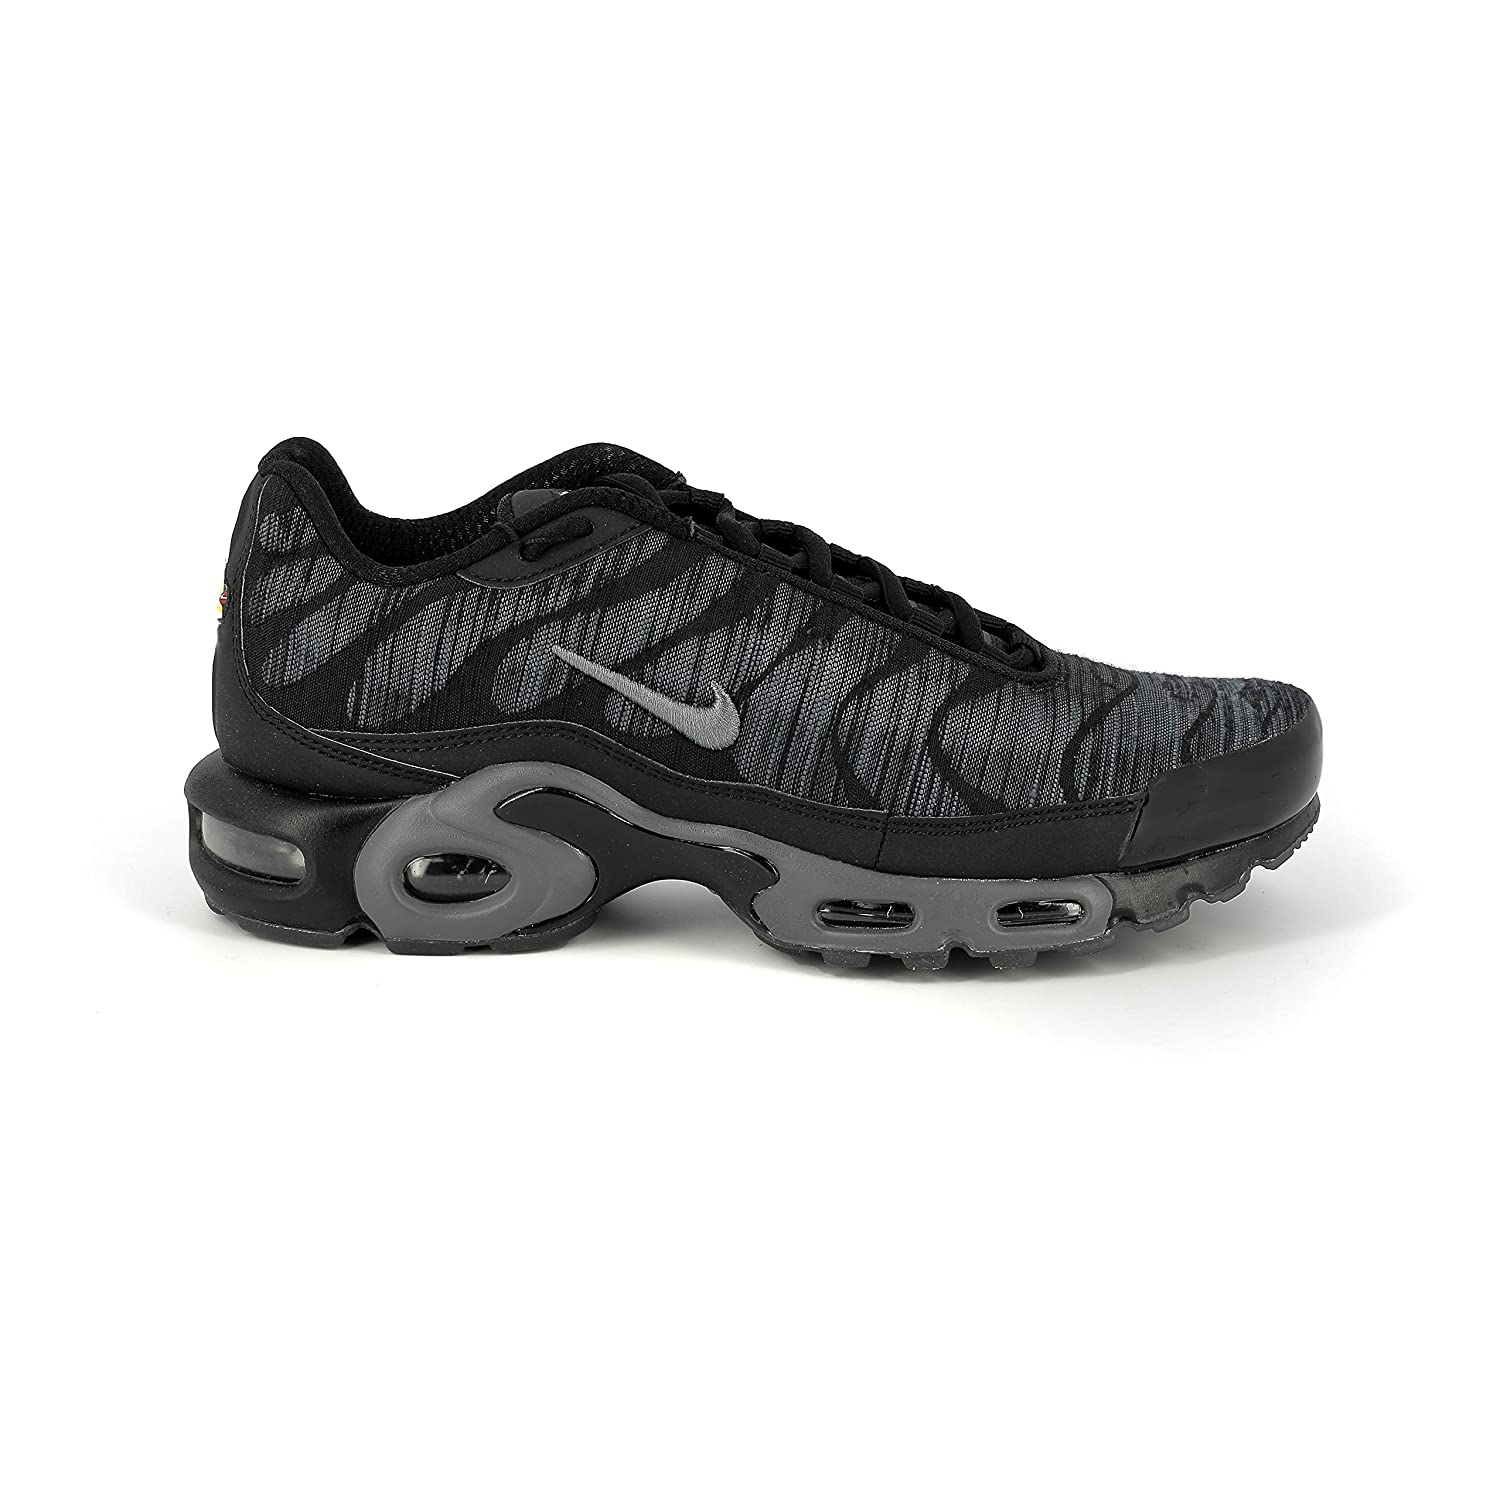 44dfcba2d8 Nike Air Max Plus Jacquard TN Tuned Men's Trainers: Amazon.co.uk: Shoes &  Bags